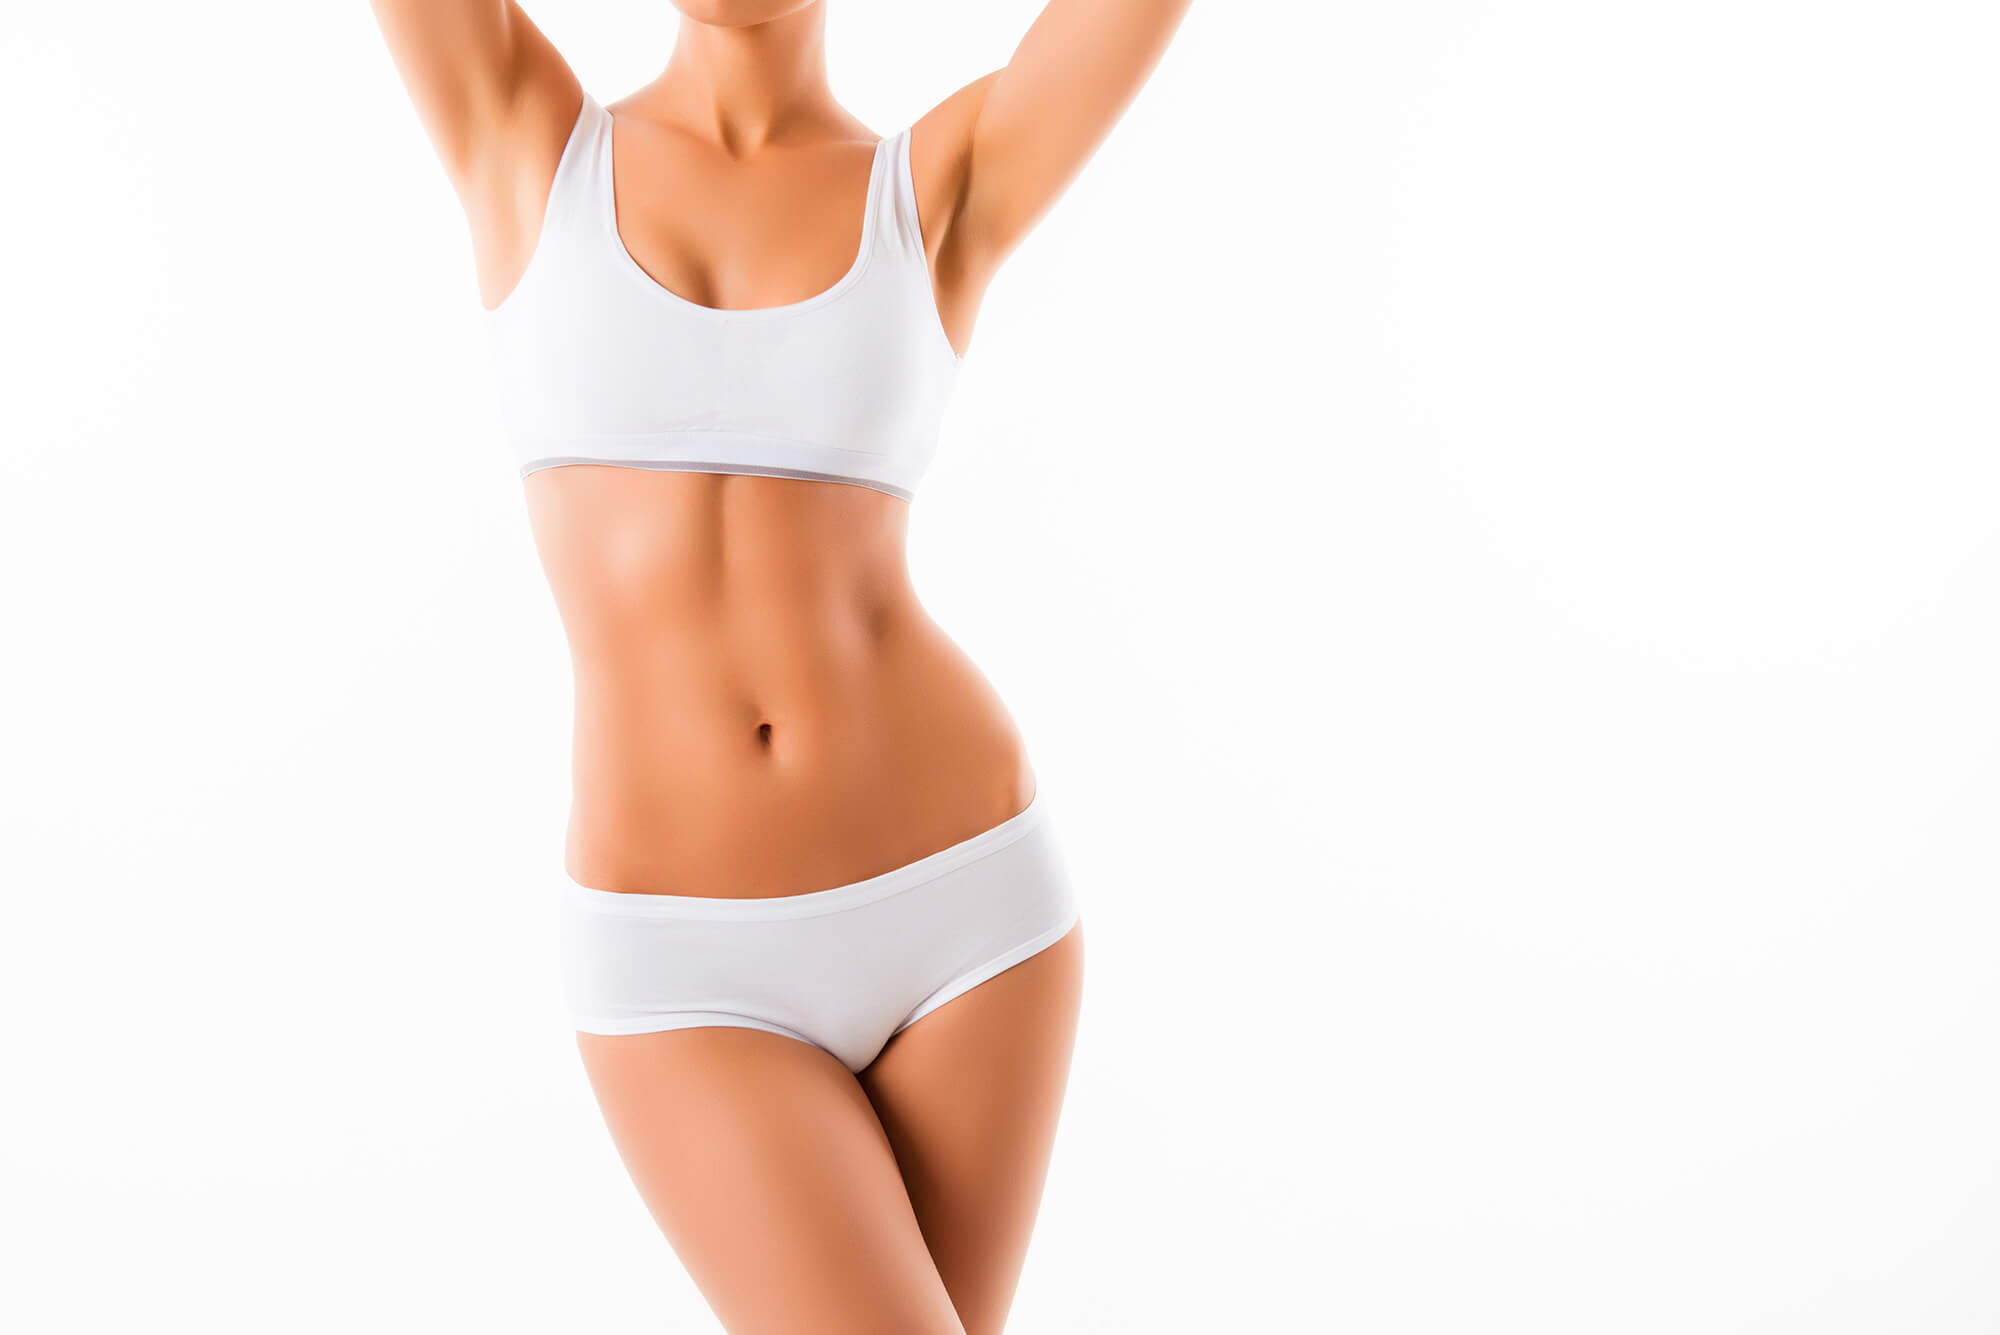 What a Tummy Tuck won't do - A tummy tuck cannot correct stretch marks, although these may be removed, or improved, if they are located on the excess skin that will be removed, generally the treated areas below the belly button.